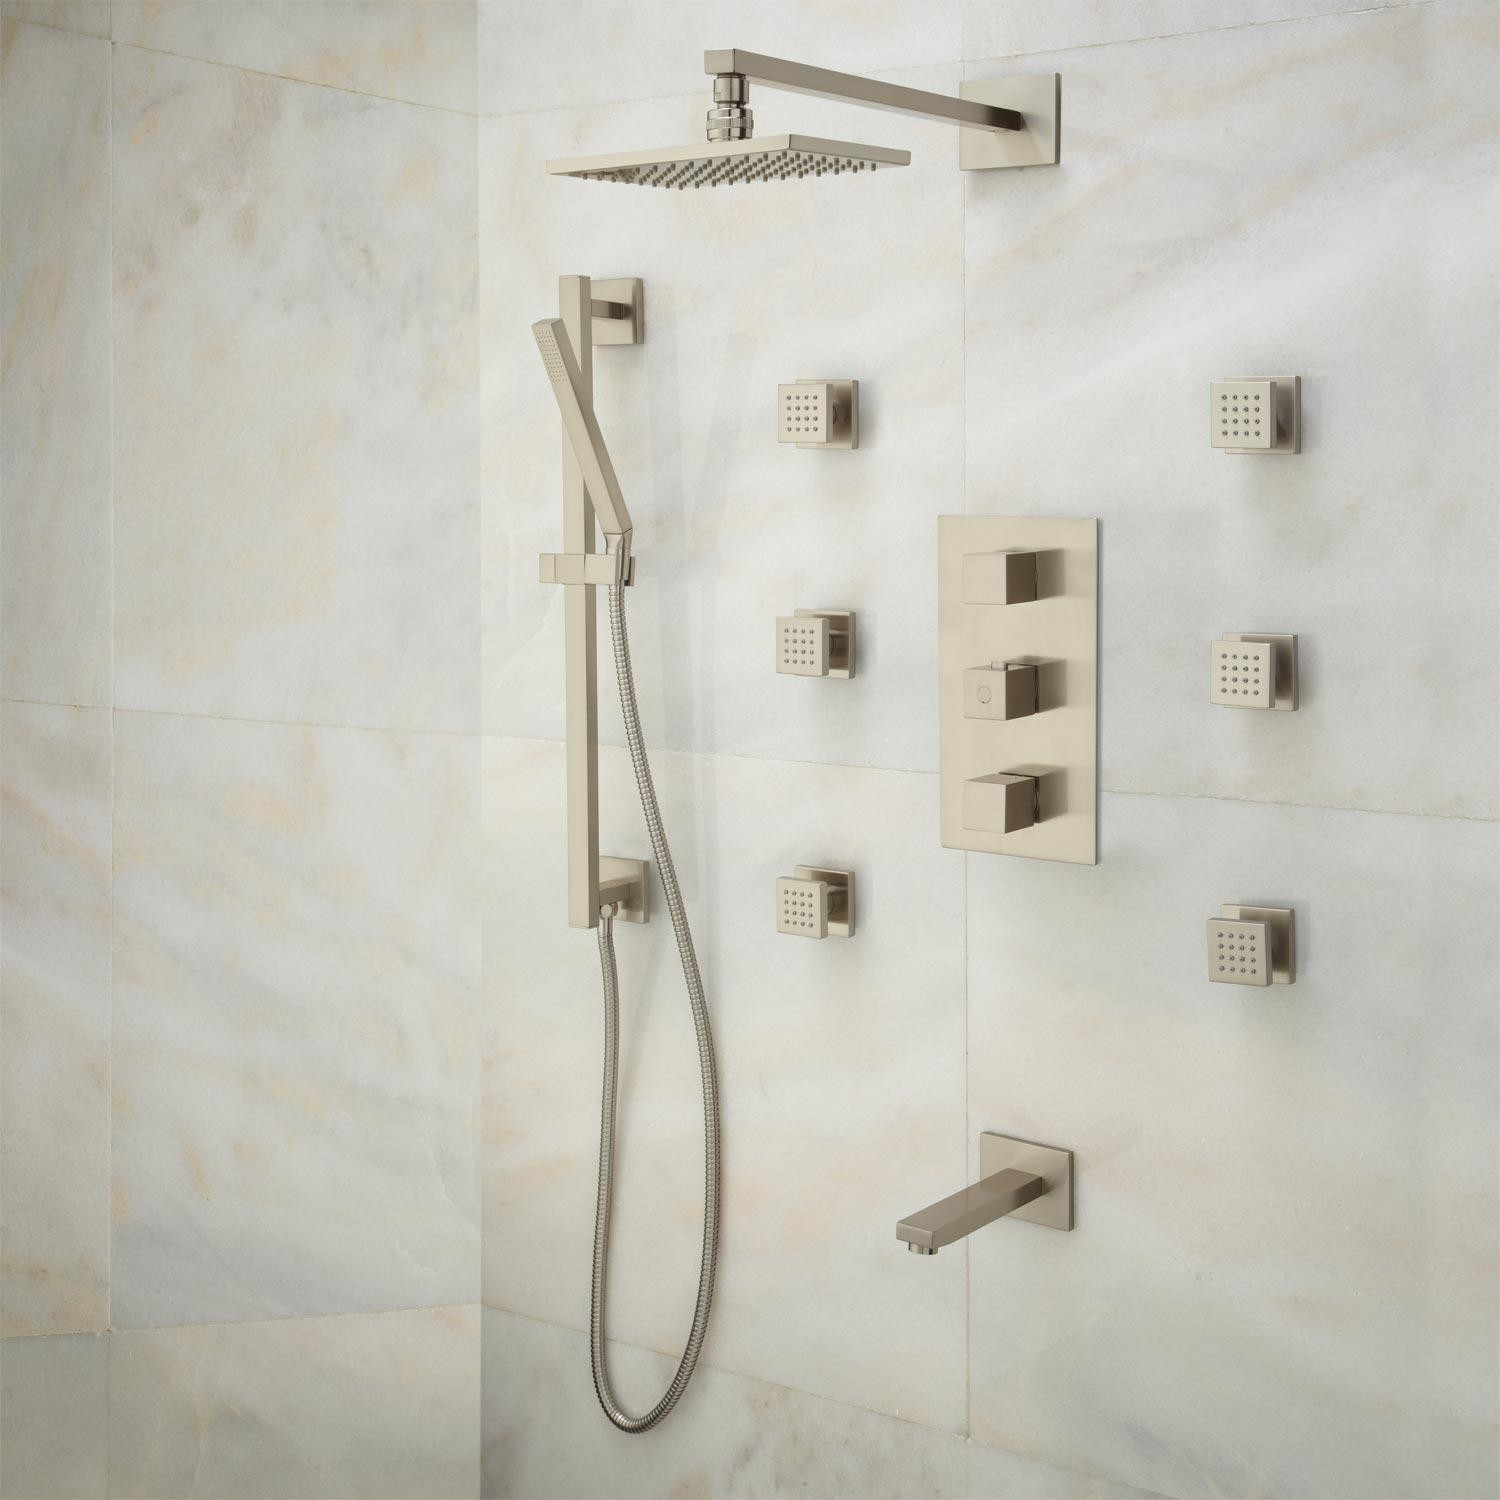 the reno brushed nickel rain shower head with mixer and 360 adjustable body jets and tub filler